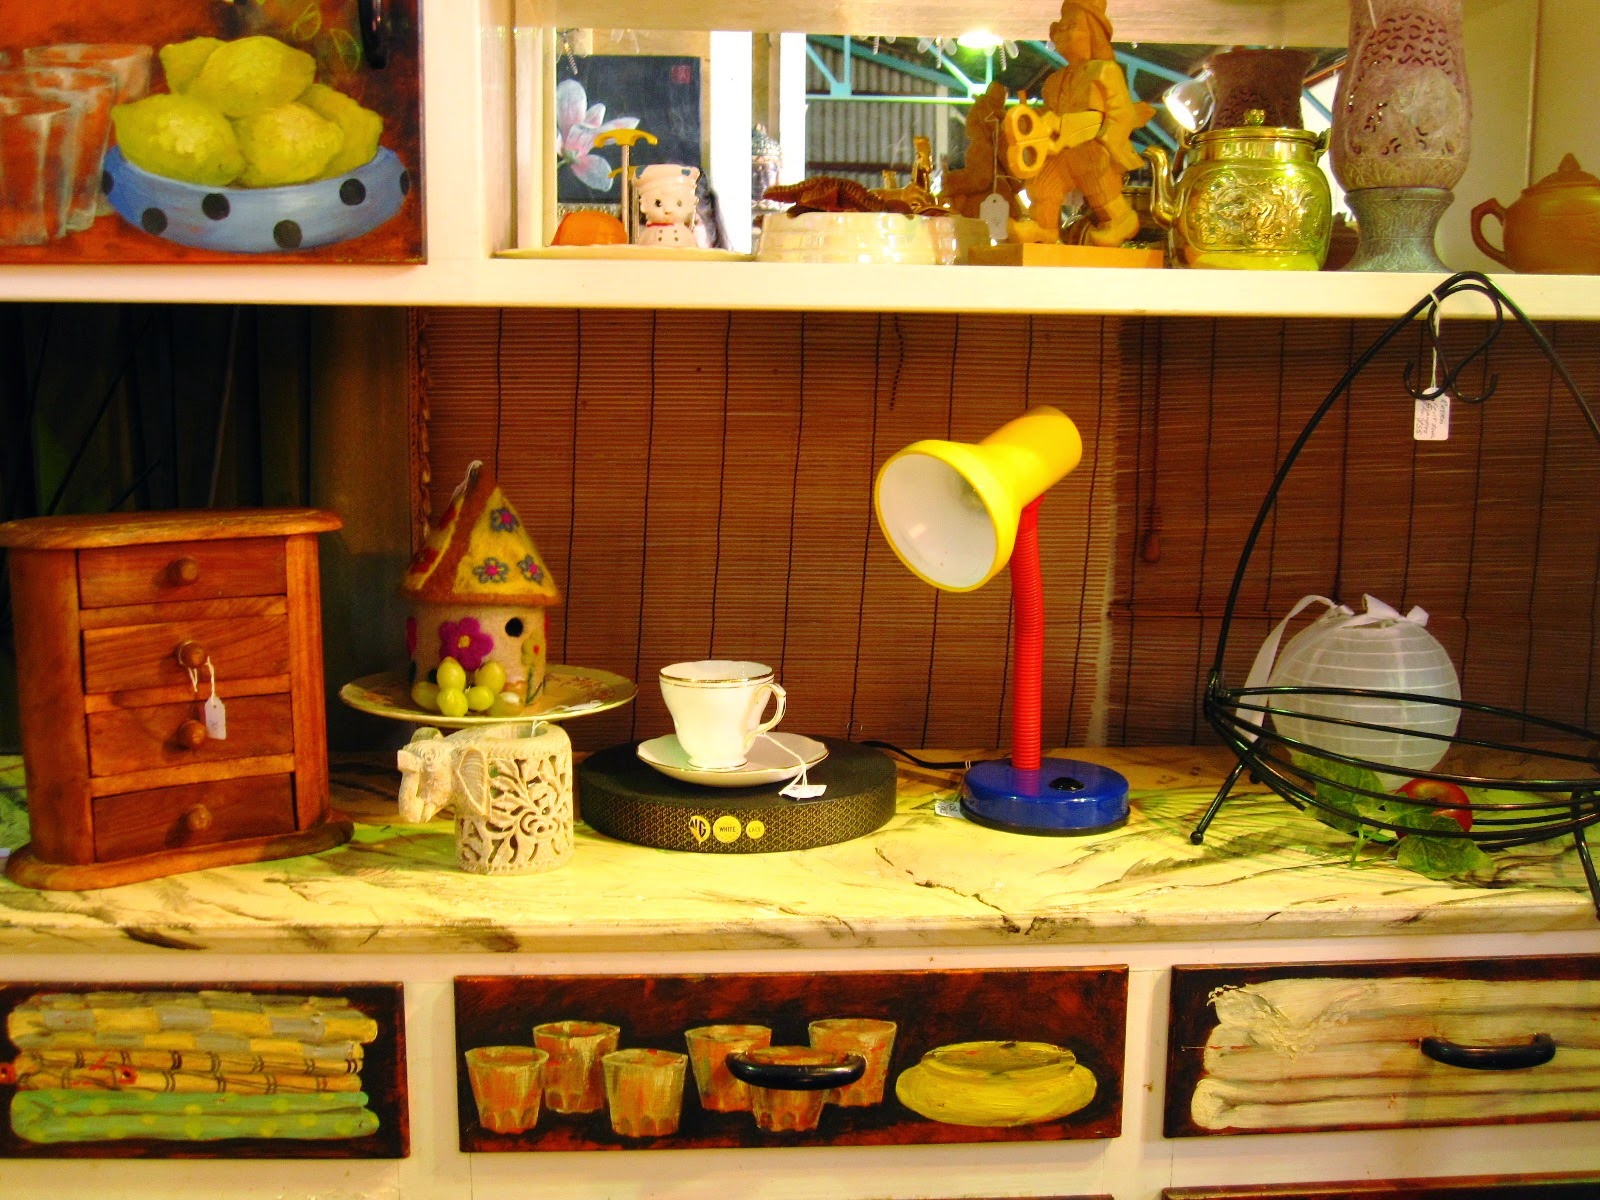 Vintage 1950s dresser, painted with trompe l'oeil of the contents of the cupboards and drawers. On it is displayed a number of items including a round house made of felt.